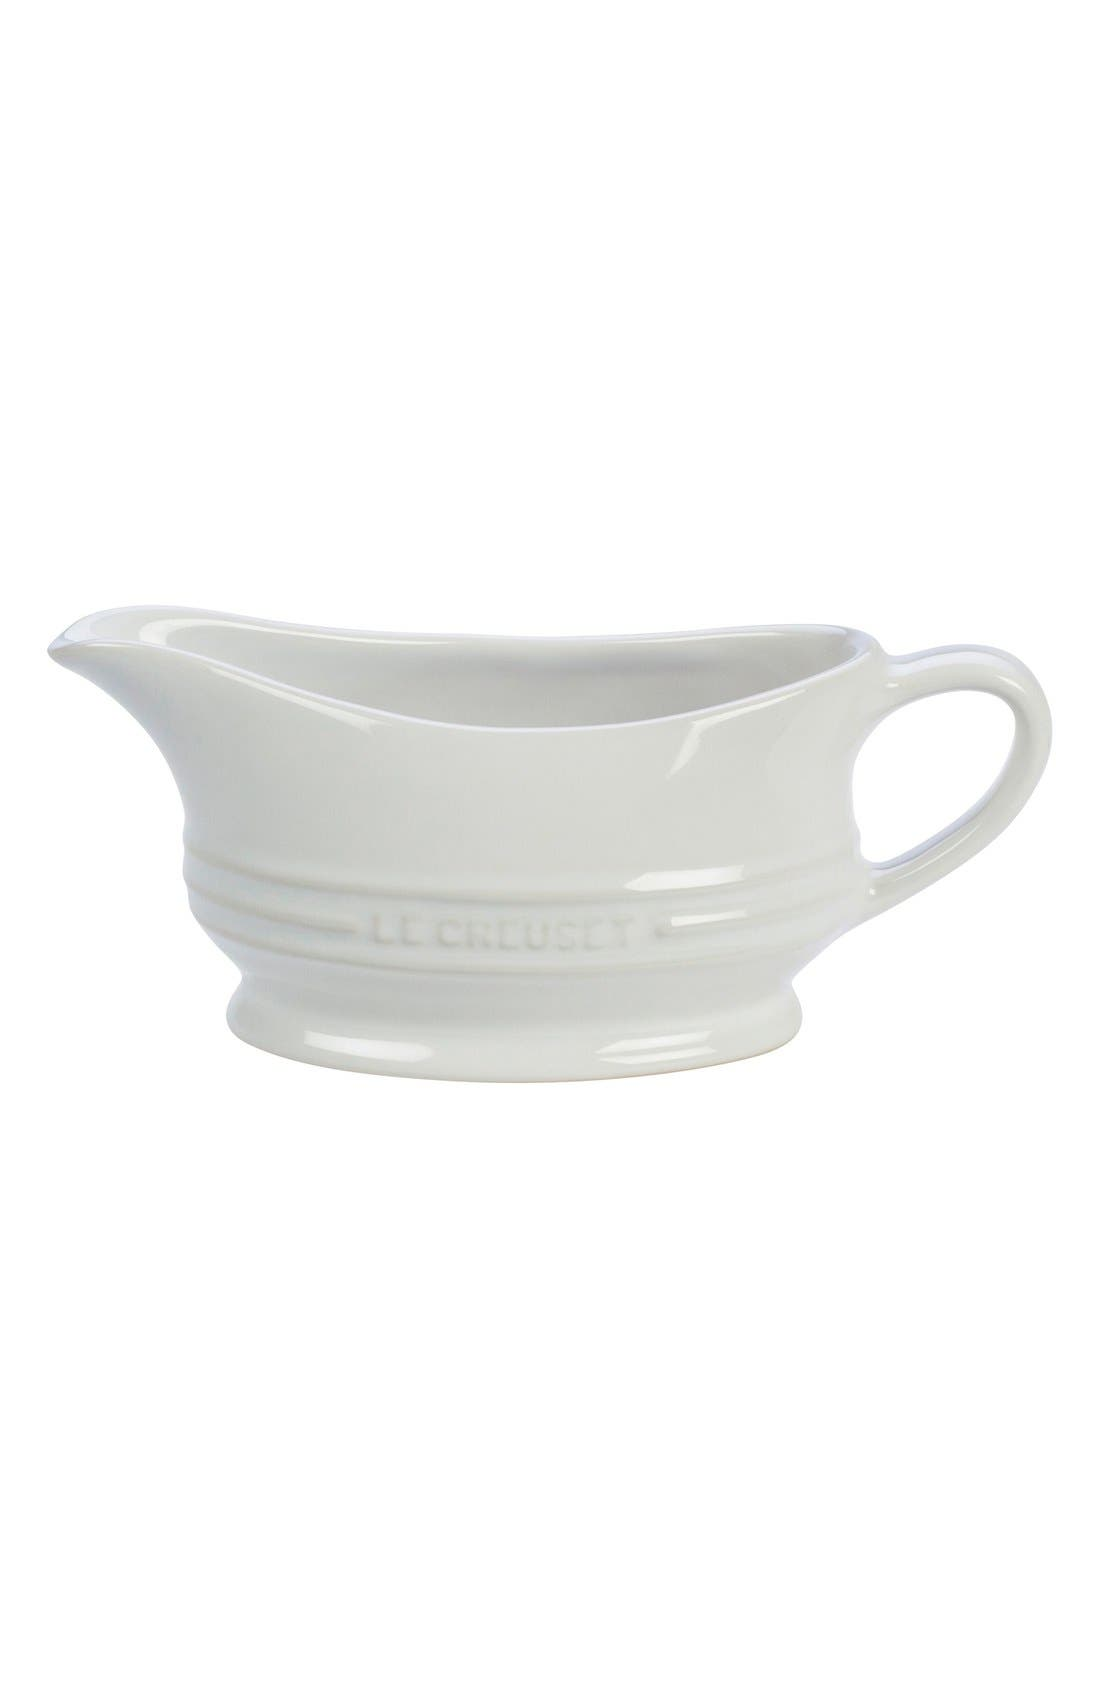 Stoneware Gravy Boat,                             Main thumbnail 1, color,                             White